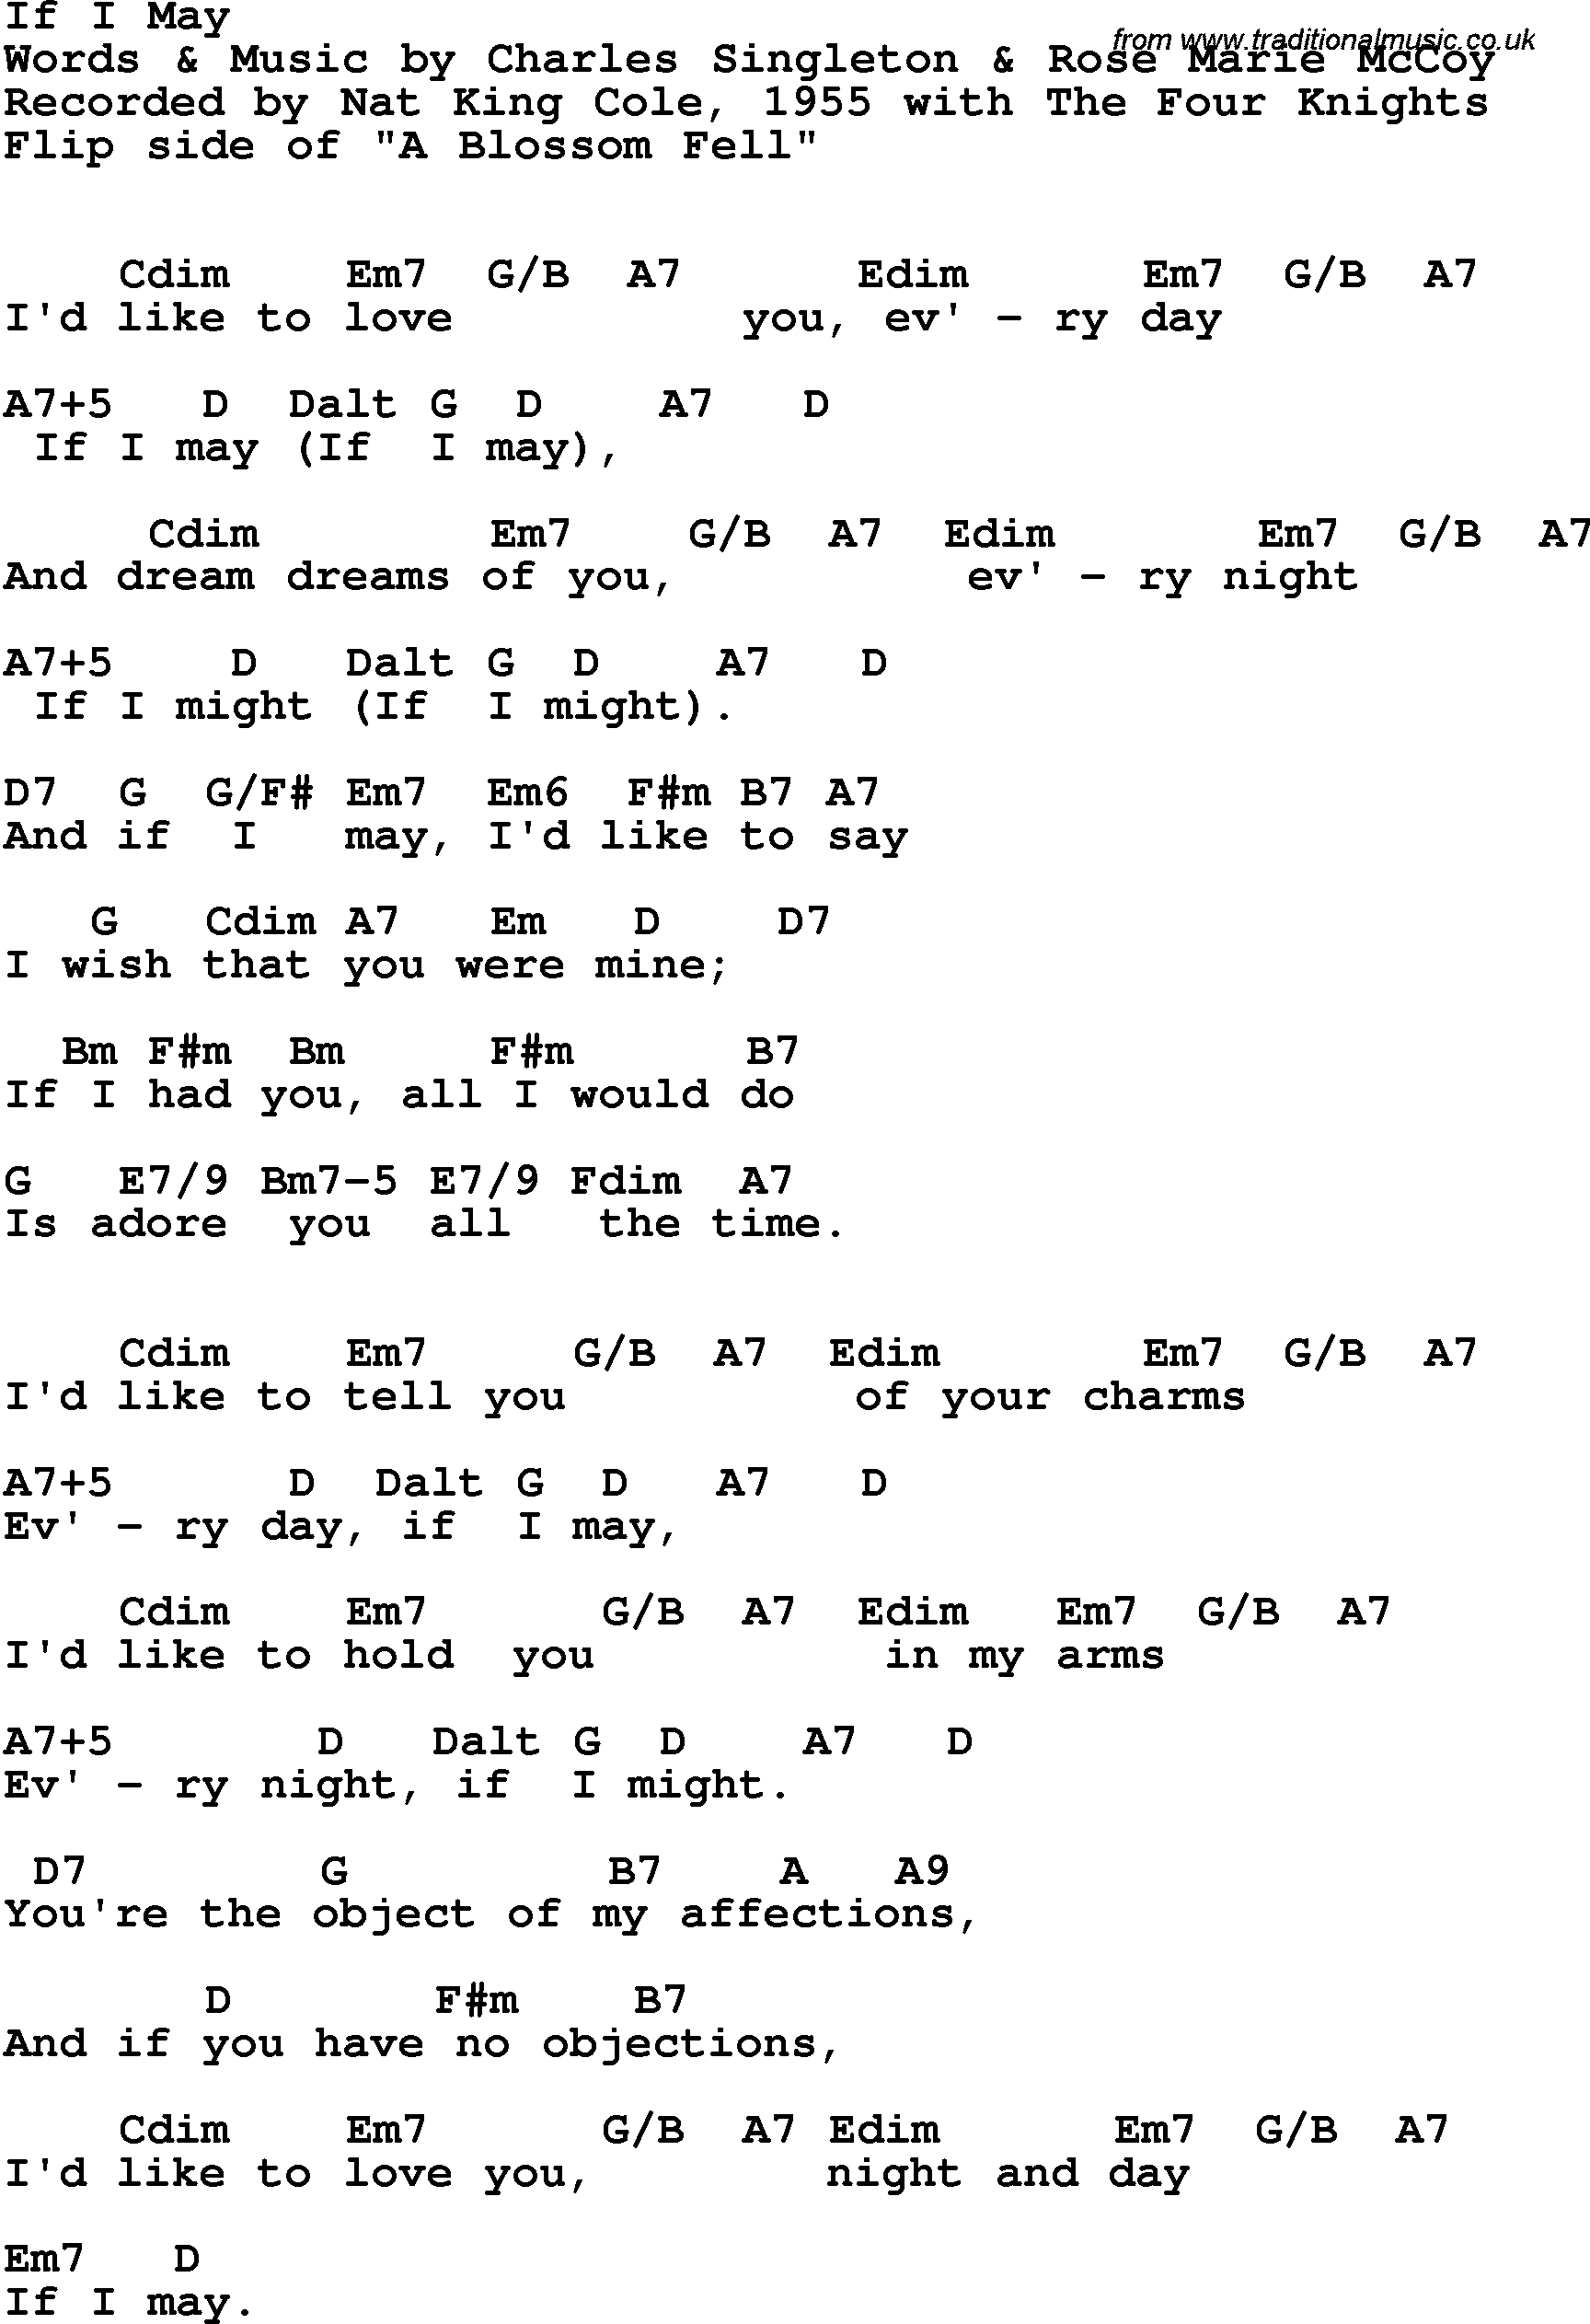 Song lyrics with guitar chords for If I May - Nat King Cole & The Four Knights, 1955